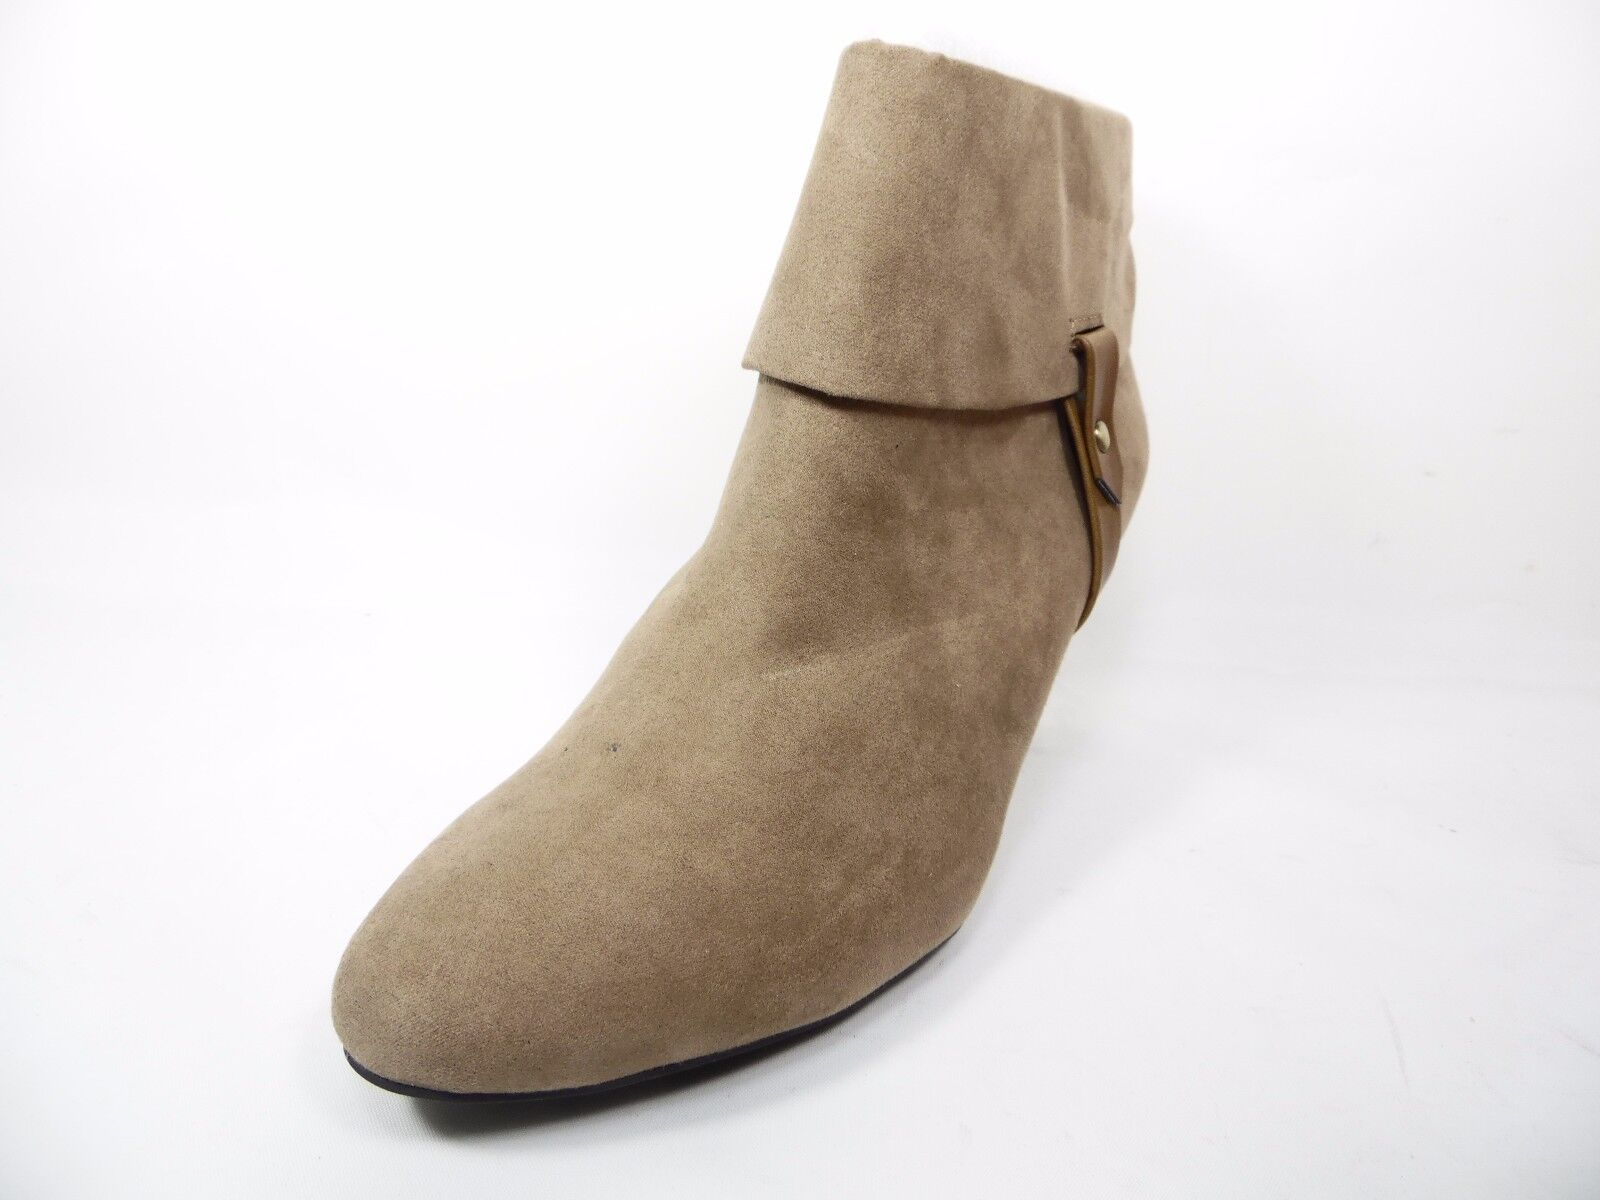 East 5th Quann Damenschuhe Ankle Booties Heels Man Made Taupe Größe 9.5W